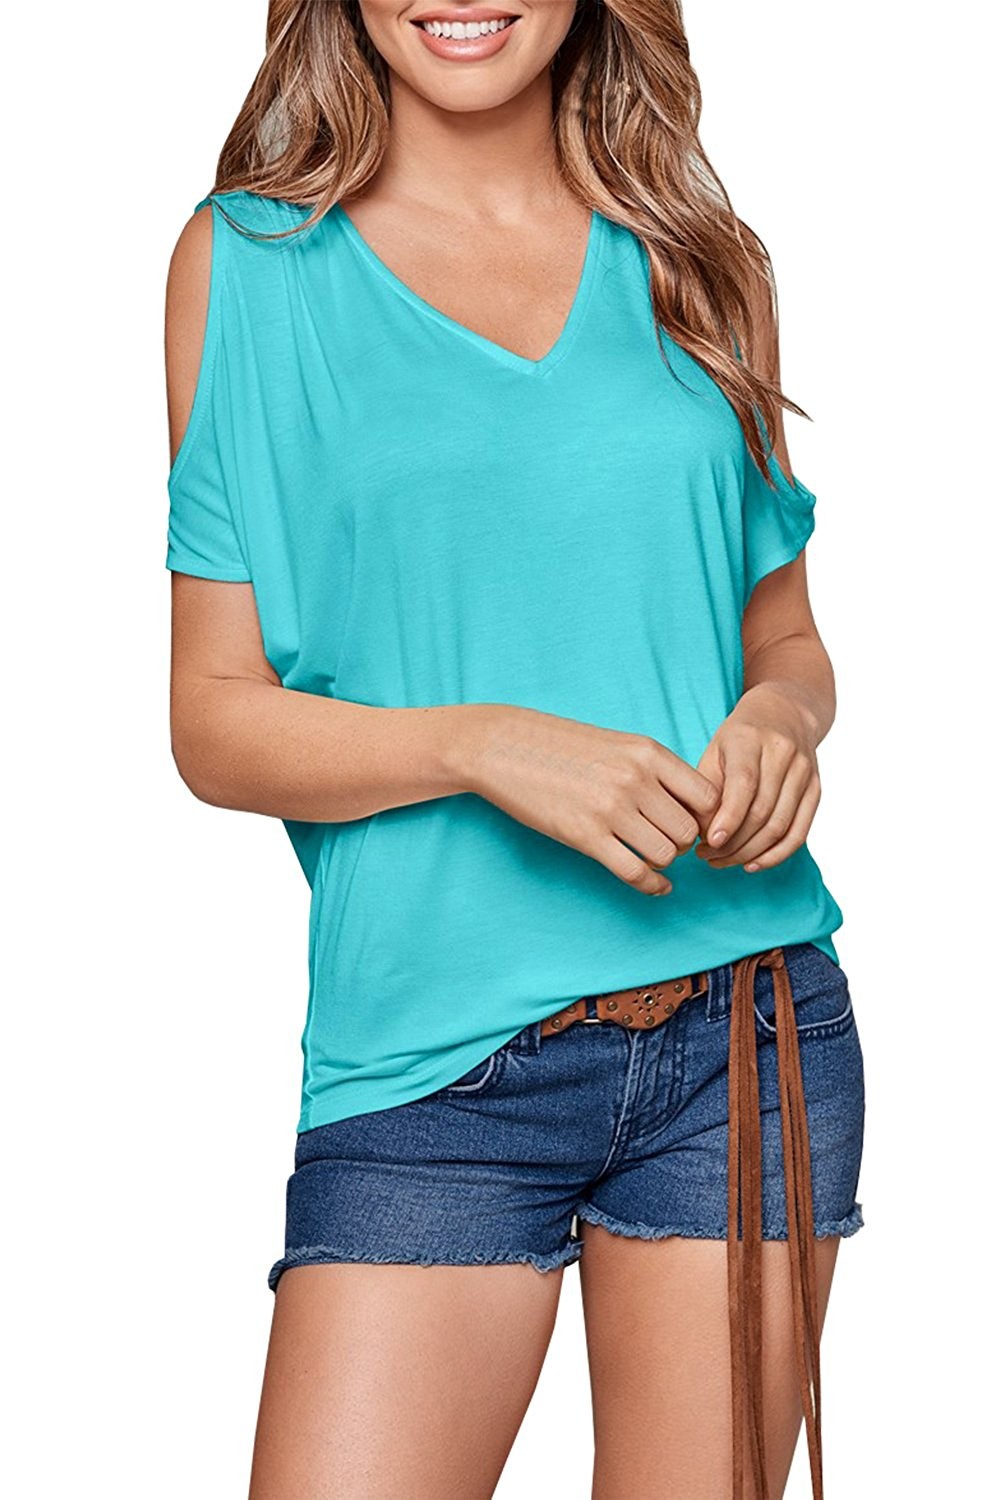 83a69ca309e01f Get Quotations · Dellytop Womens Cold Shoulder V Neck Casual Shirts Loose  Fitting Tops Oversized Blouses